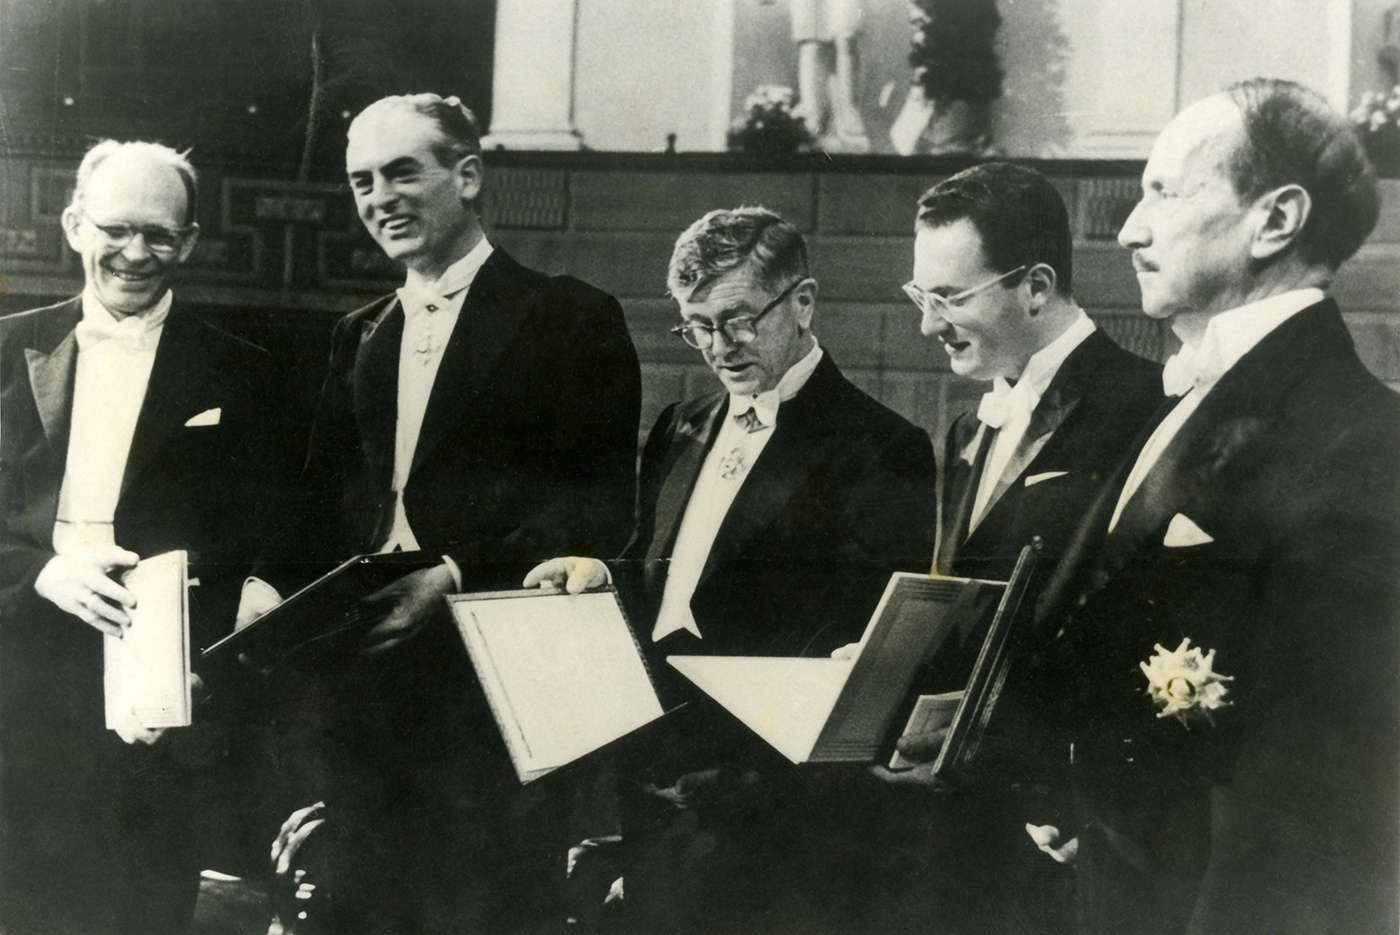 Five Nobel Prize winners, including Sir Frank Macfarlane Burnet, photographed together after receiving their awards.